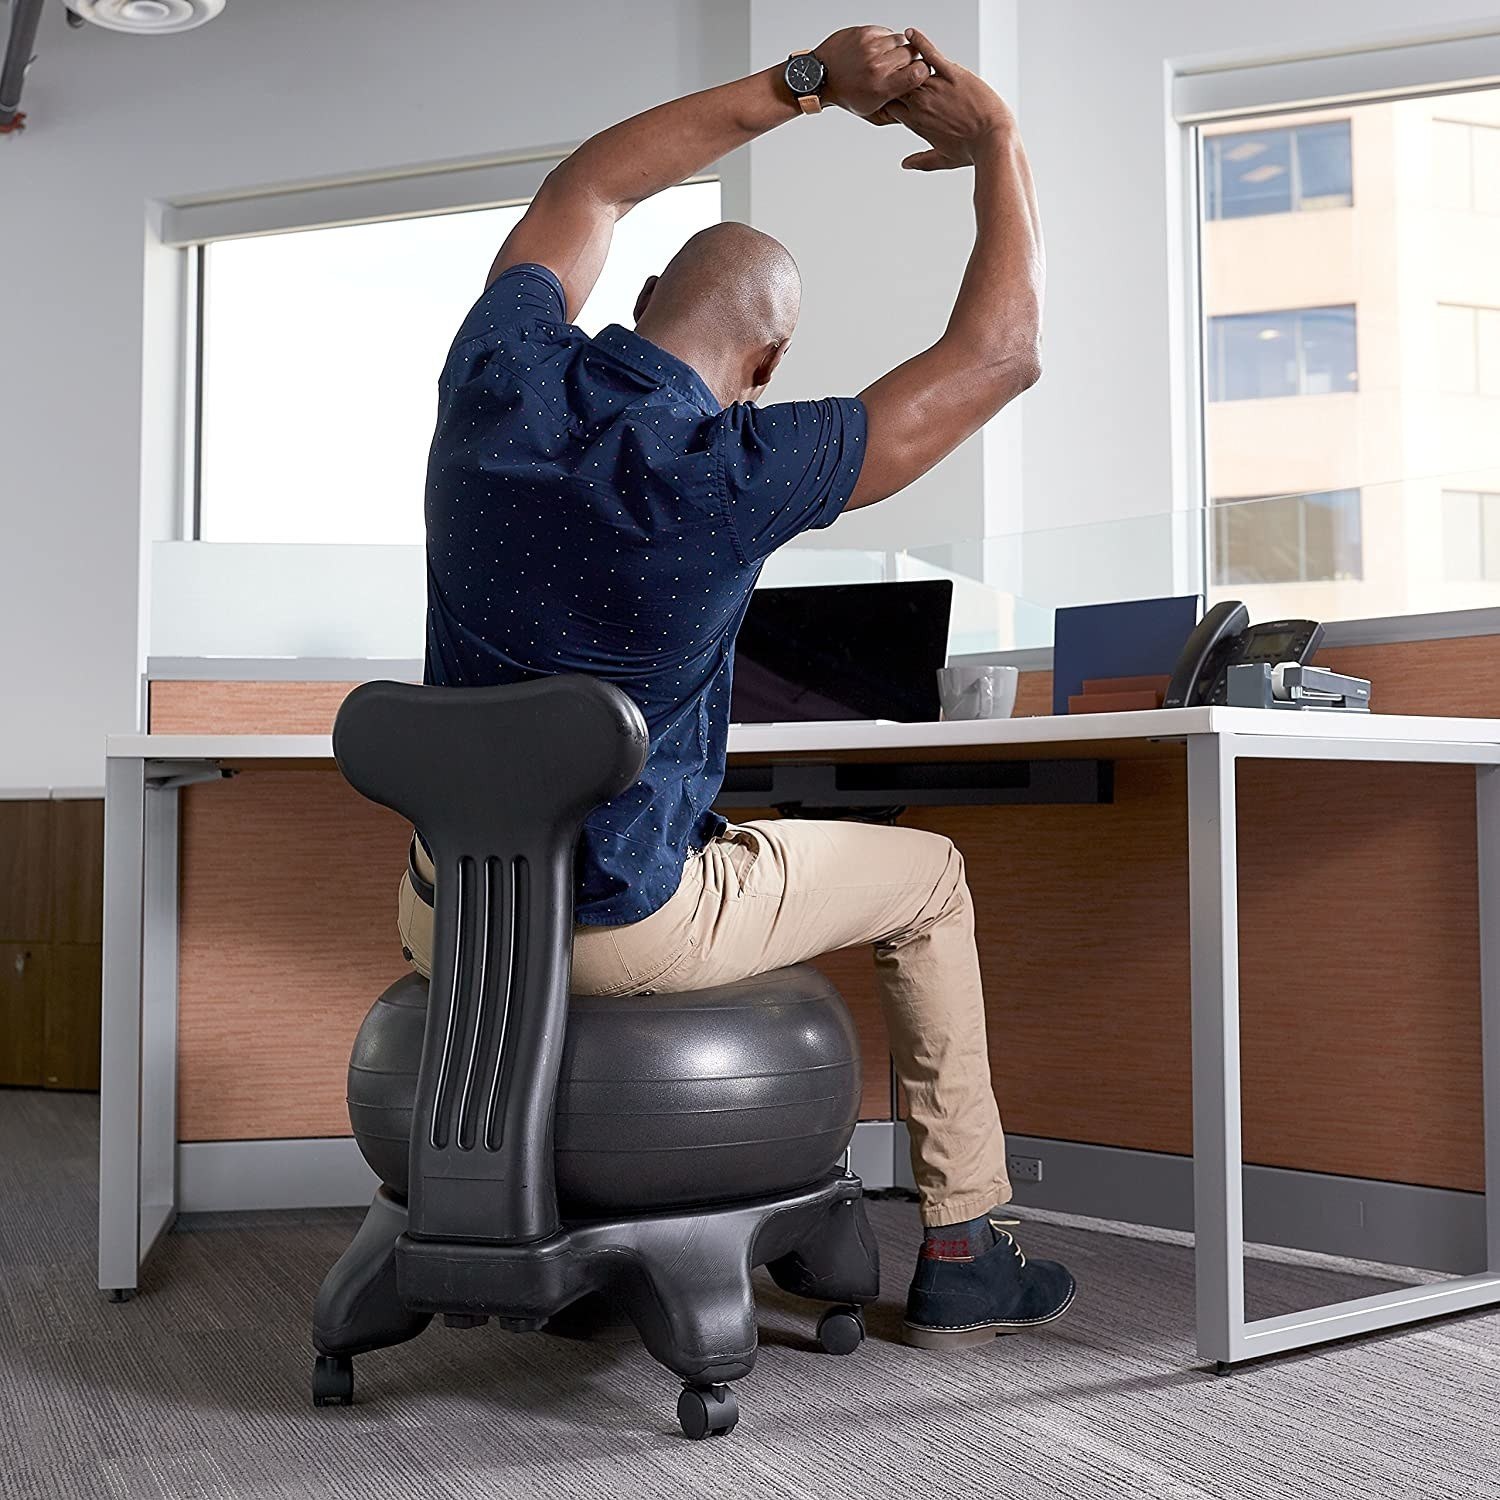 A person stretching as they sit on the balance ball chair in their office